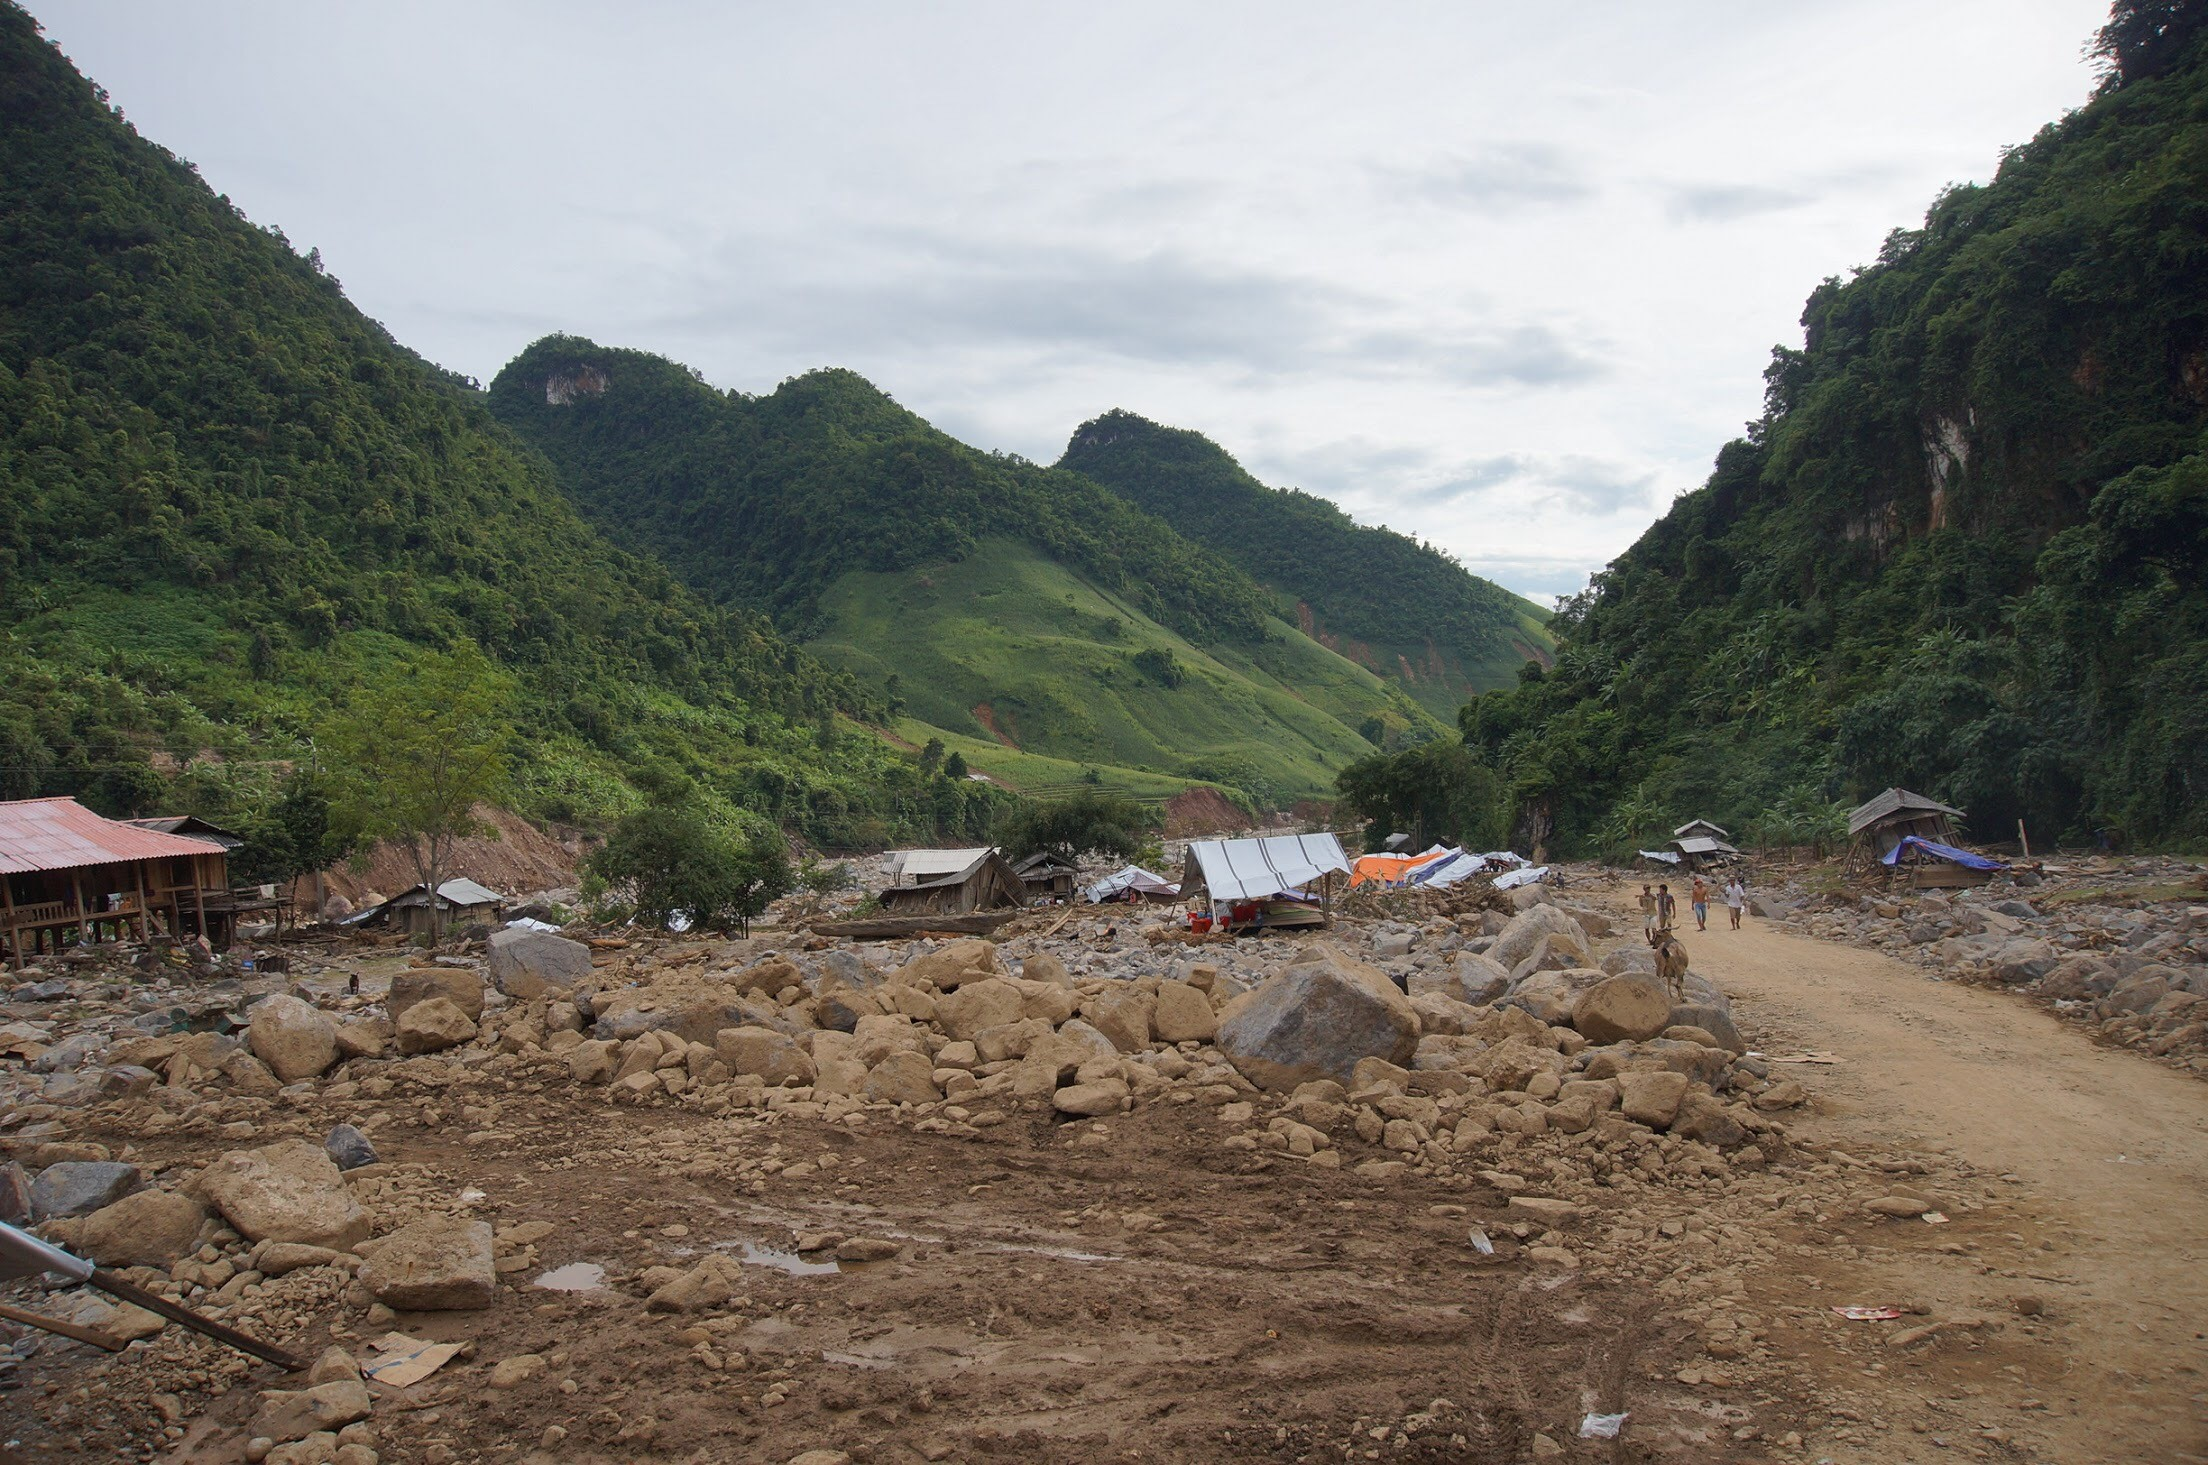 Dekalb Vietnam provides flood relief in Son La province